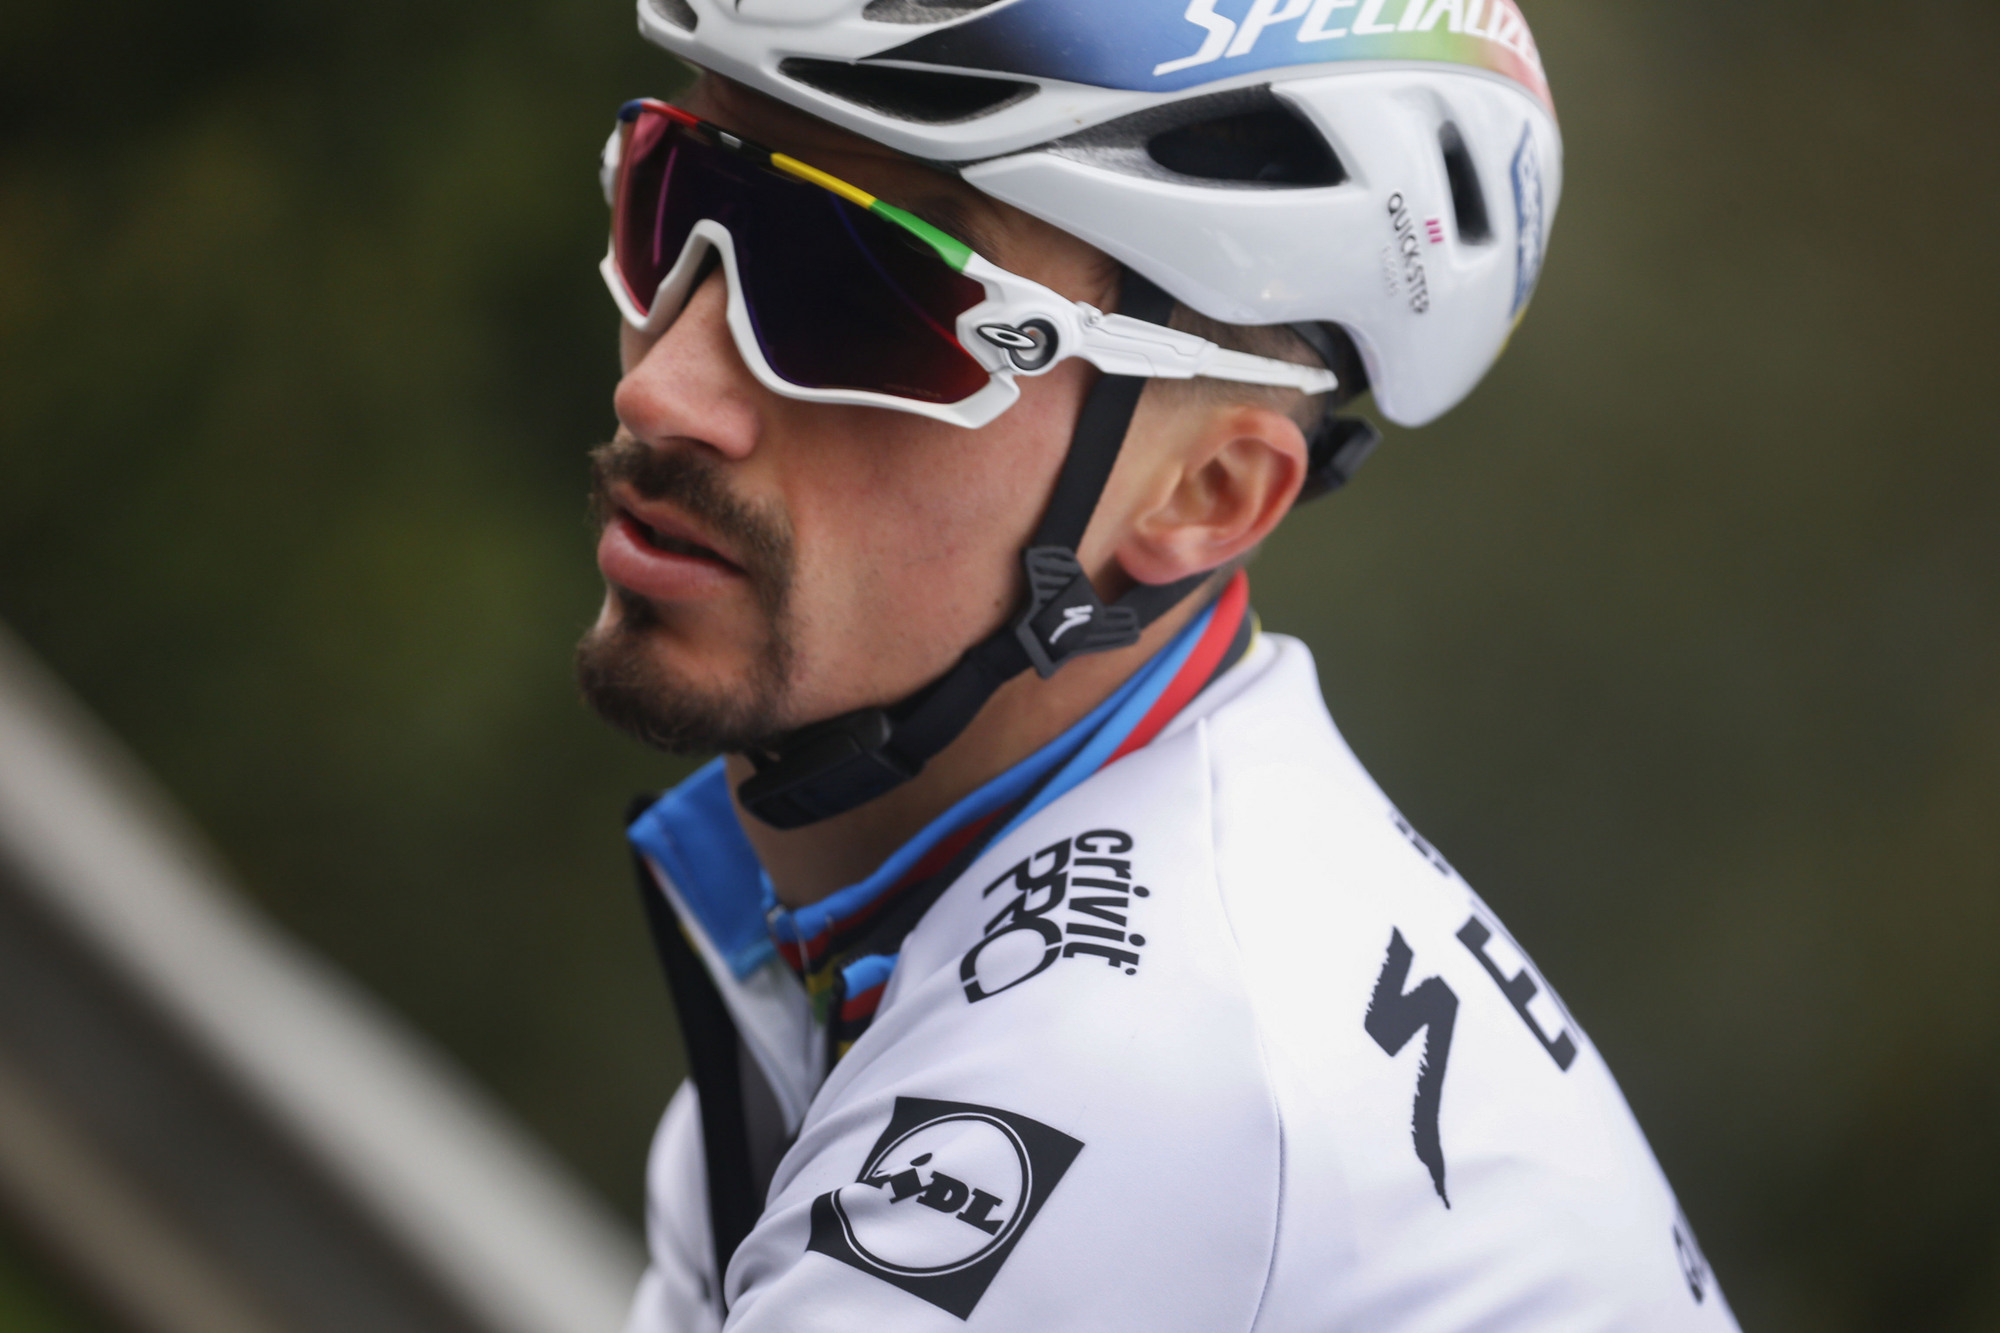 Julian Alaphilippe (Deceuninck-QuickStep) at the 2020 Tour of Flanders